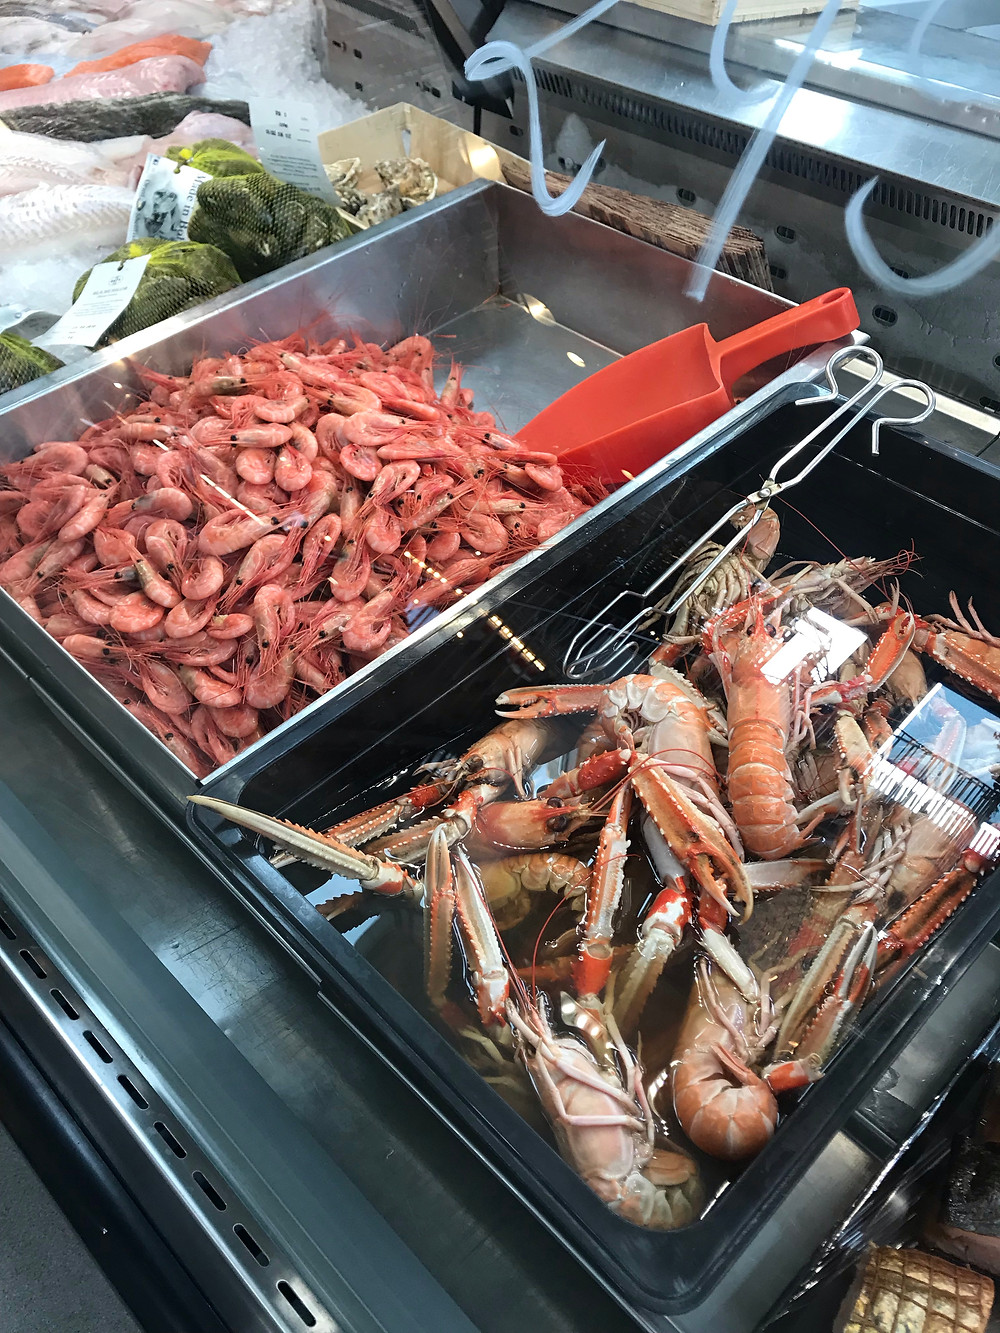 Fresh Mussels, Shrimps and Langoustines in the Fish Monger's Counter!